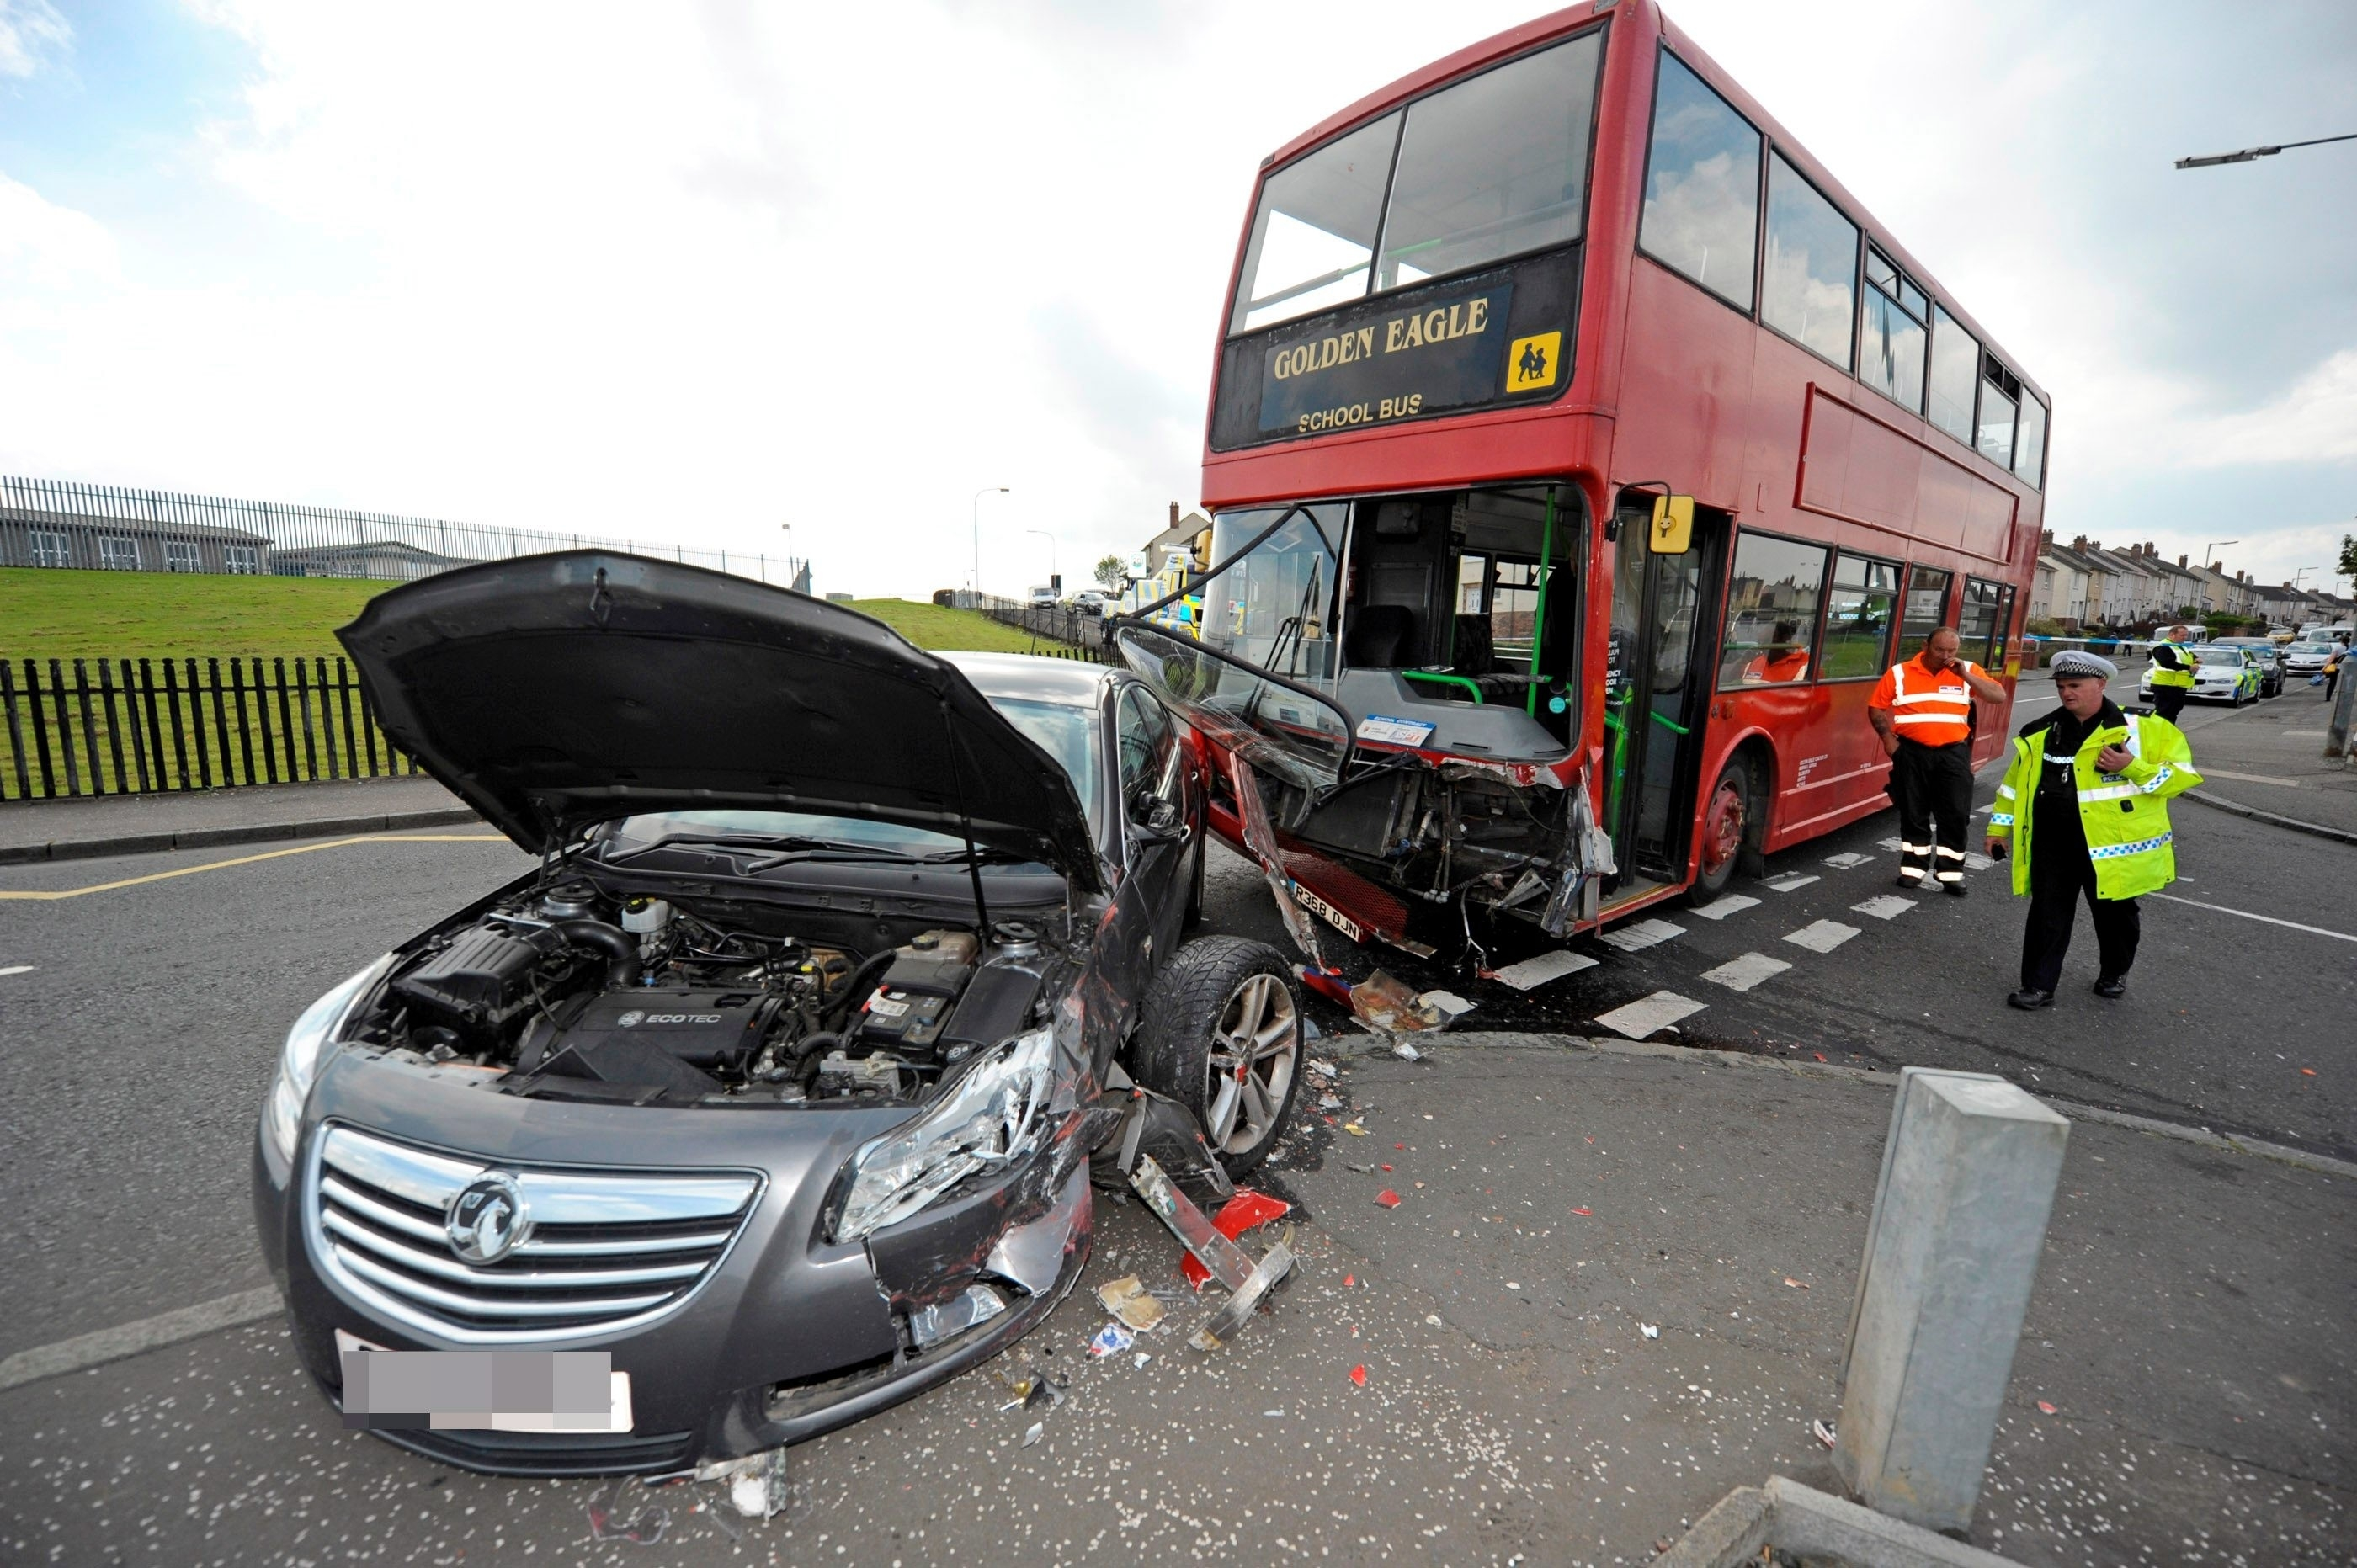 School children taken to hospital after the bus they were travelling in collided with a car